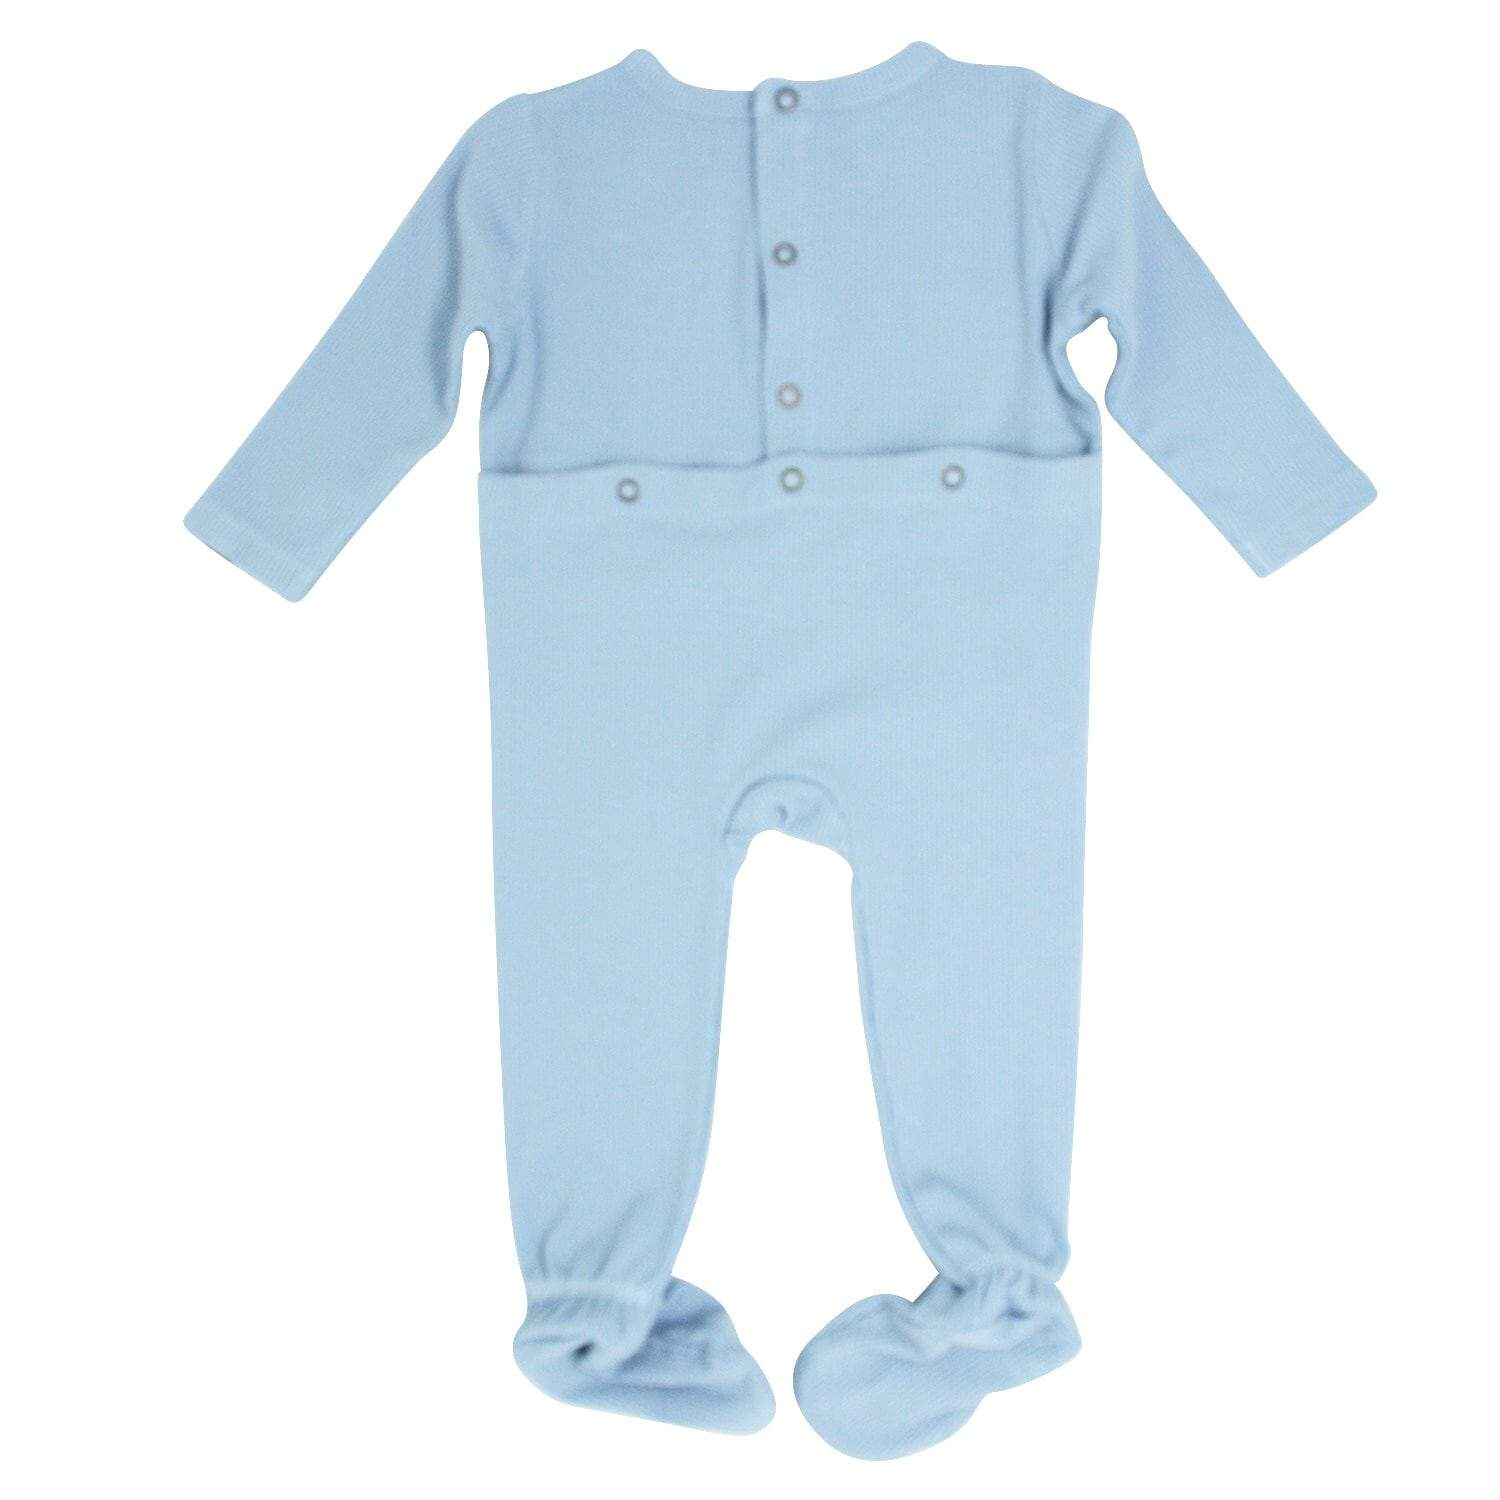 Footie with Bum Flap - Bashful Blue - Sweet Bamboo